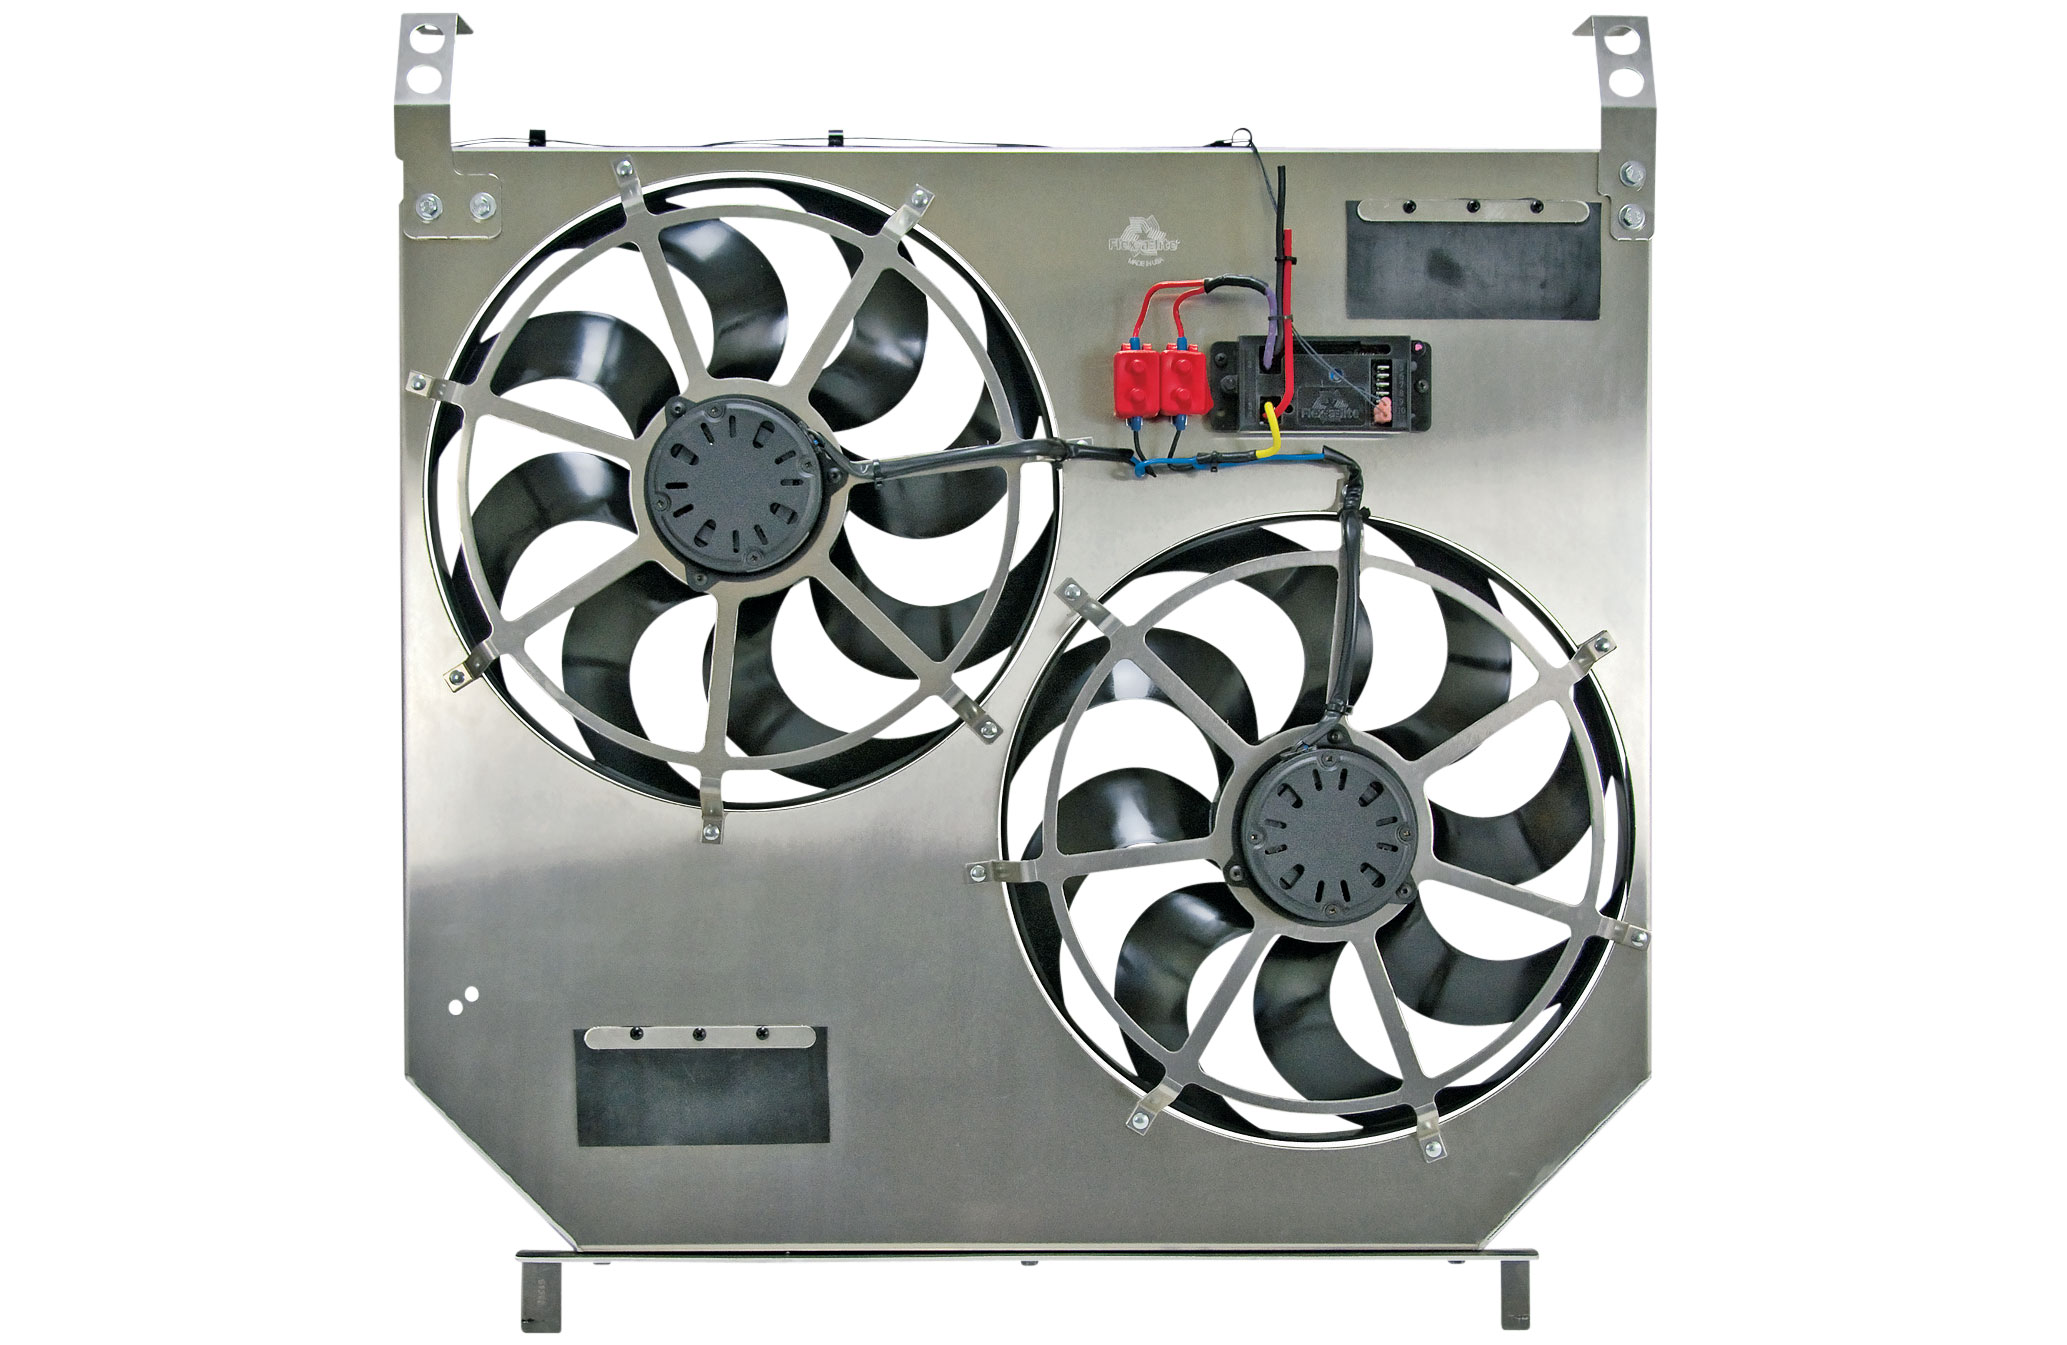 The system also includes a Flex-A-Lite exclusive clutch fan emulator that plugs into the existing control system, sending feedback to the truck ECM and avoiding potential check engine codes. The electric fans are operated by a Flex-A-Lite Variable Speed Controller that starts the fans at 60 percent power and increases fan speed as the temperature rises and lets you adjust the temperature at which the fans turn on (between approximately 160 and 240 degrees Fahrenheit). The controller also includes terminals to activate the fans when the vehicle air conditioning is turned on, as well as cockpit manual override control for tow mode or water crossings.